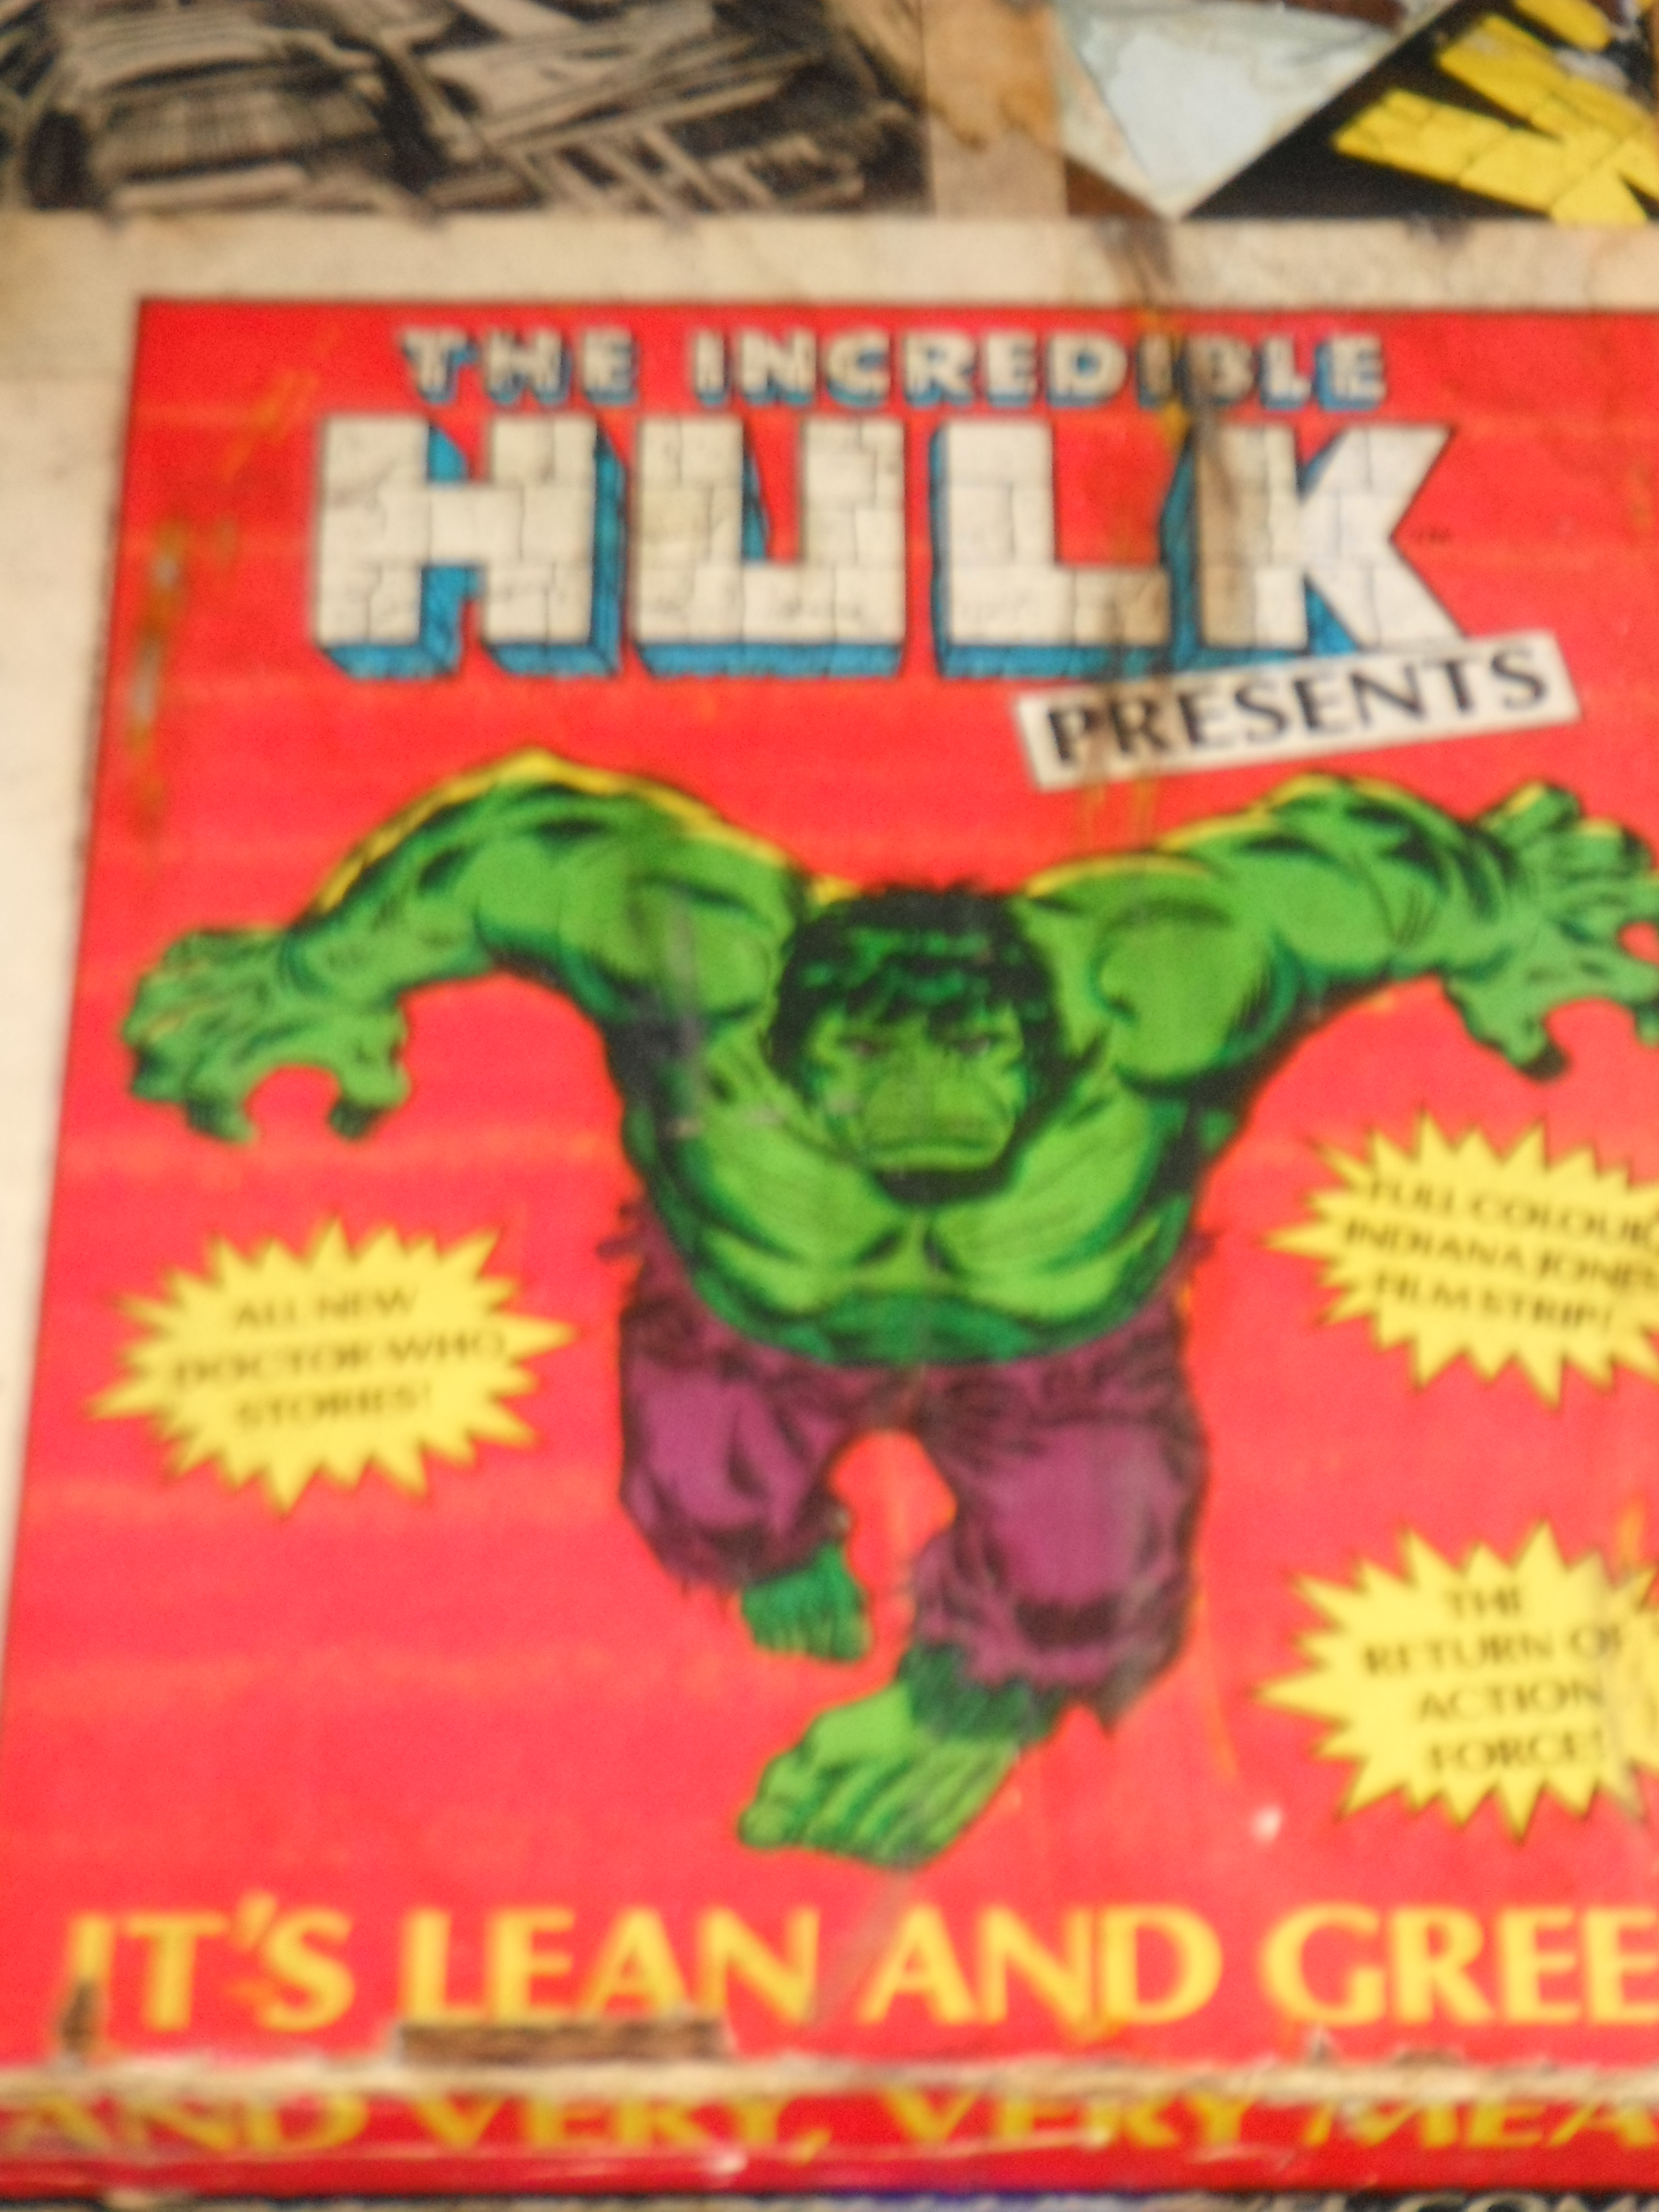 photo taken by me - Hulk comic cover - FAB Cafe, Manchester